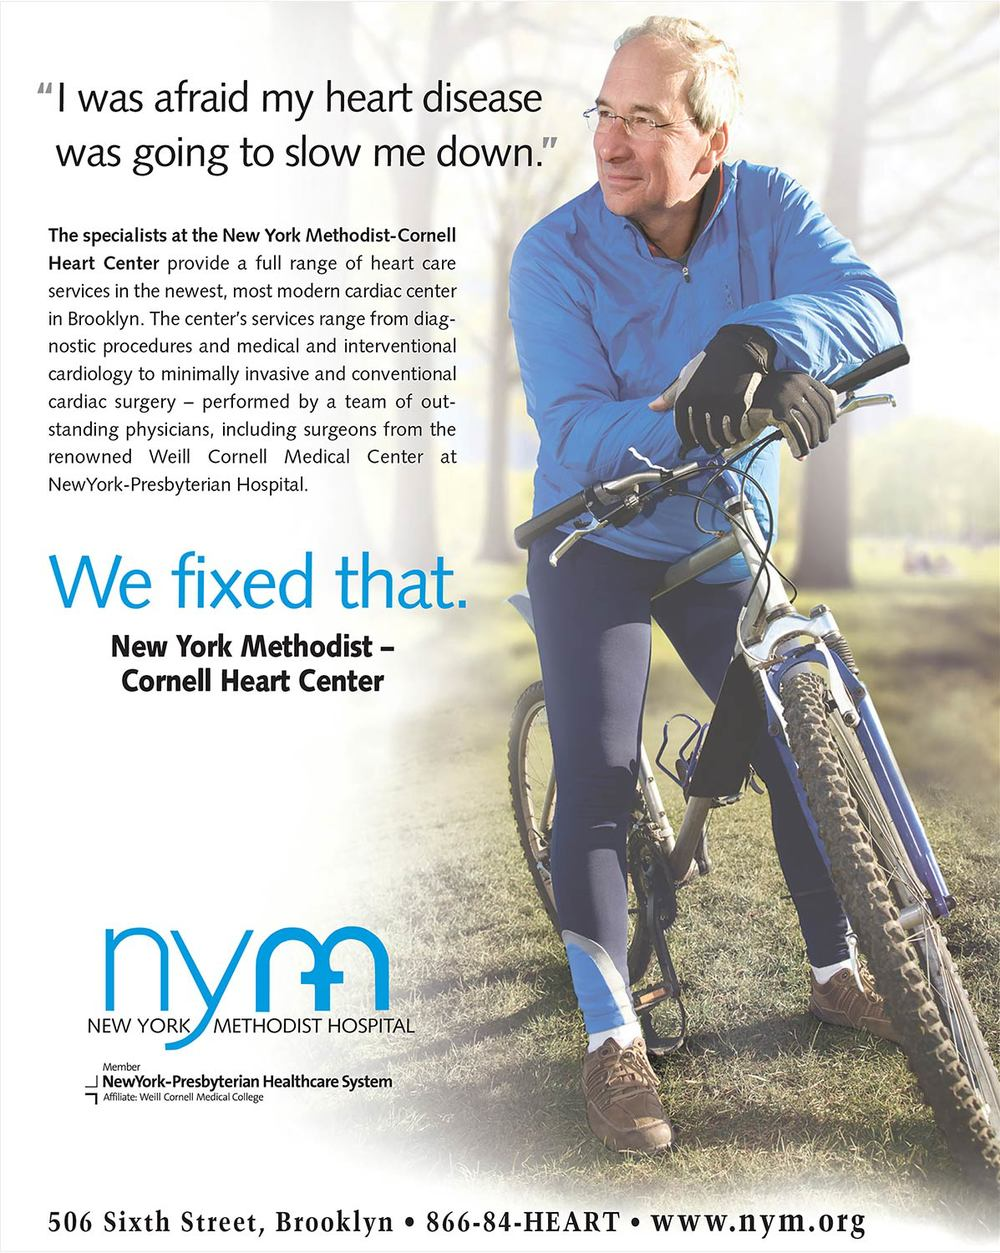 NYM-MAN-ON-BIKE.jpg